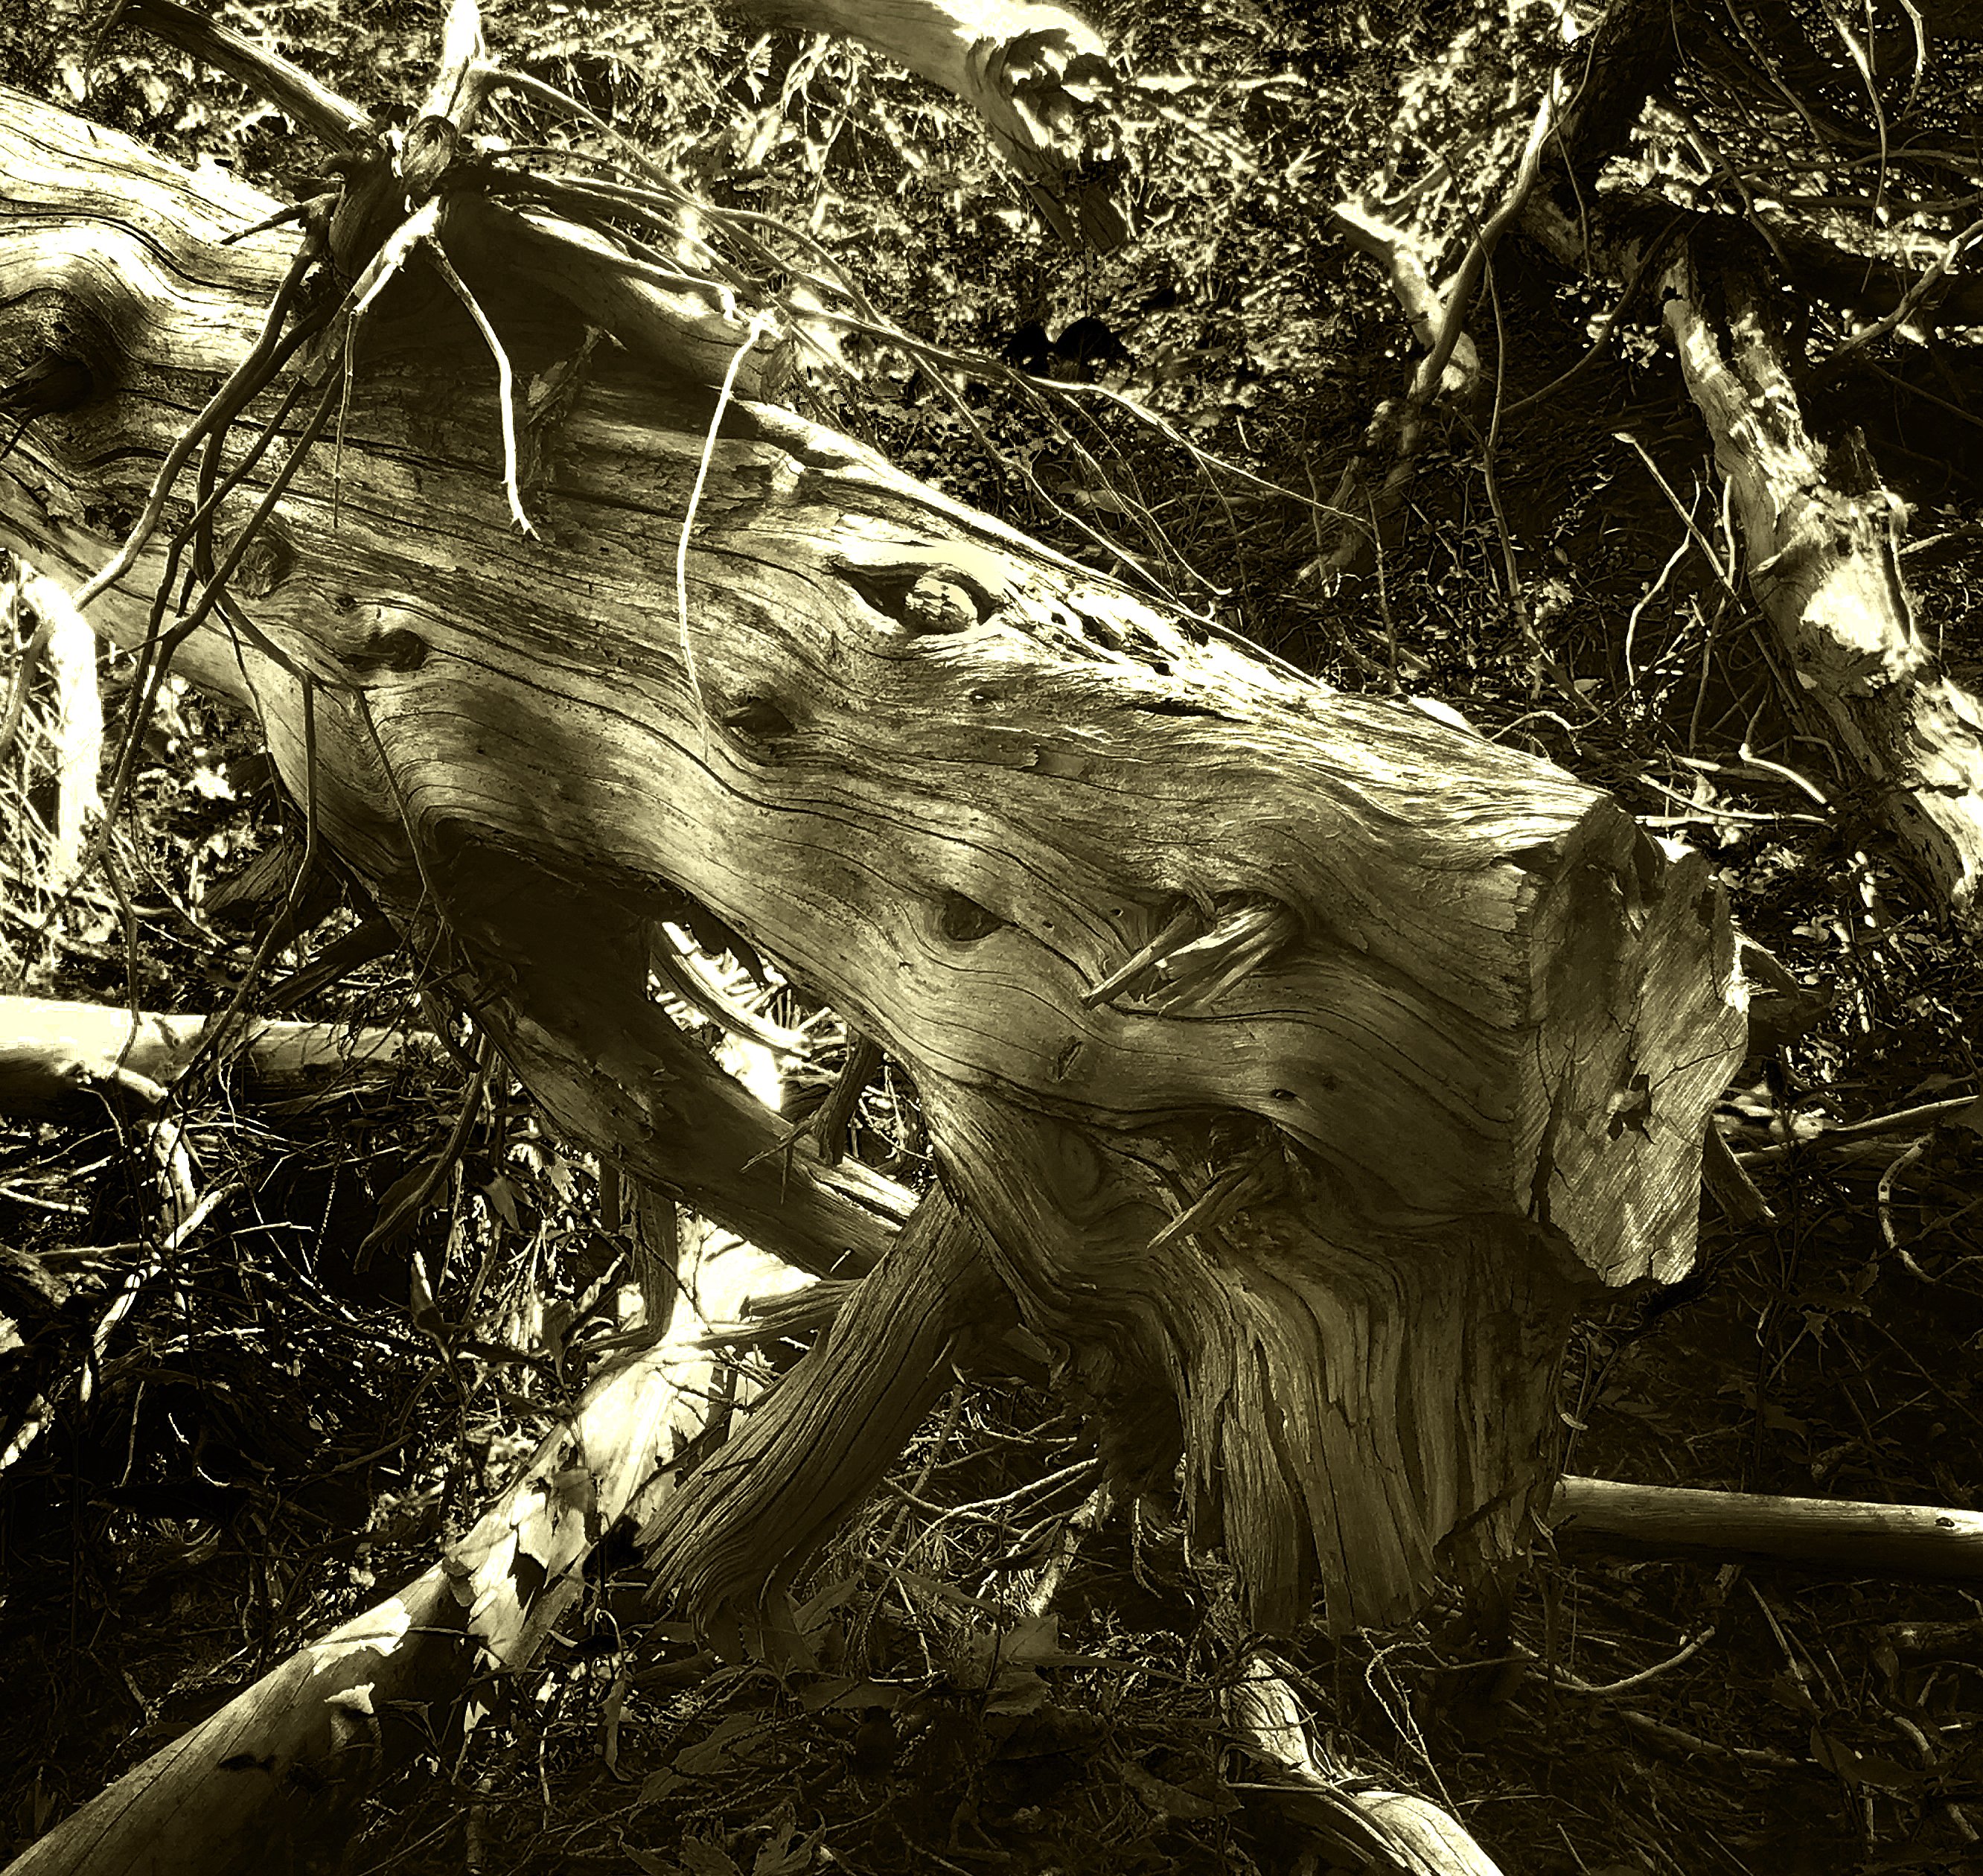 Figure 1 - Dragon in the Olympic National Park, August 19, 2016, (c) AB & DE Wolf 2016.